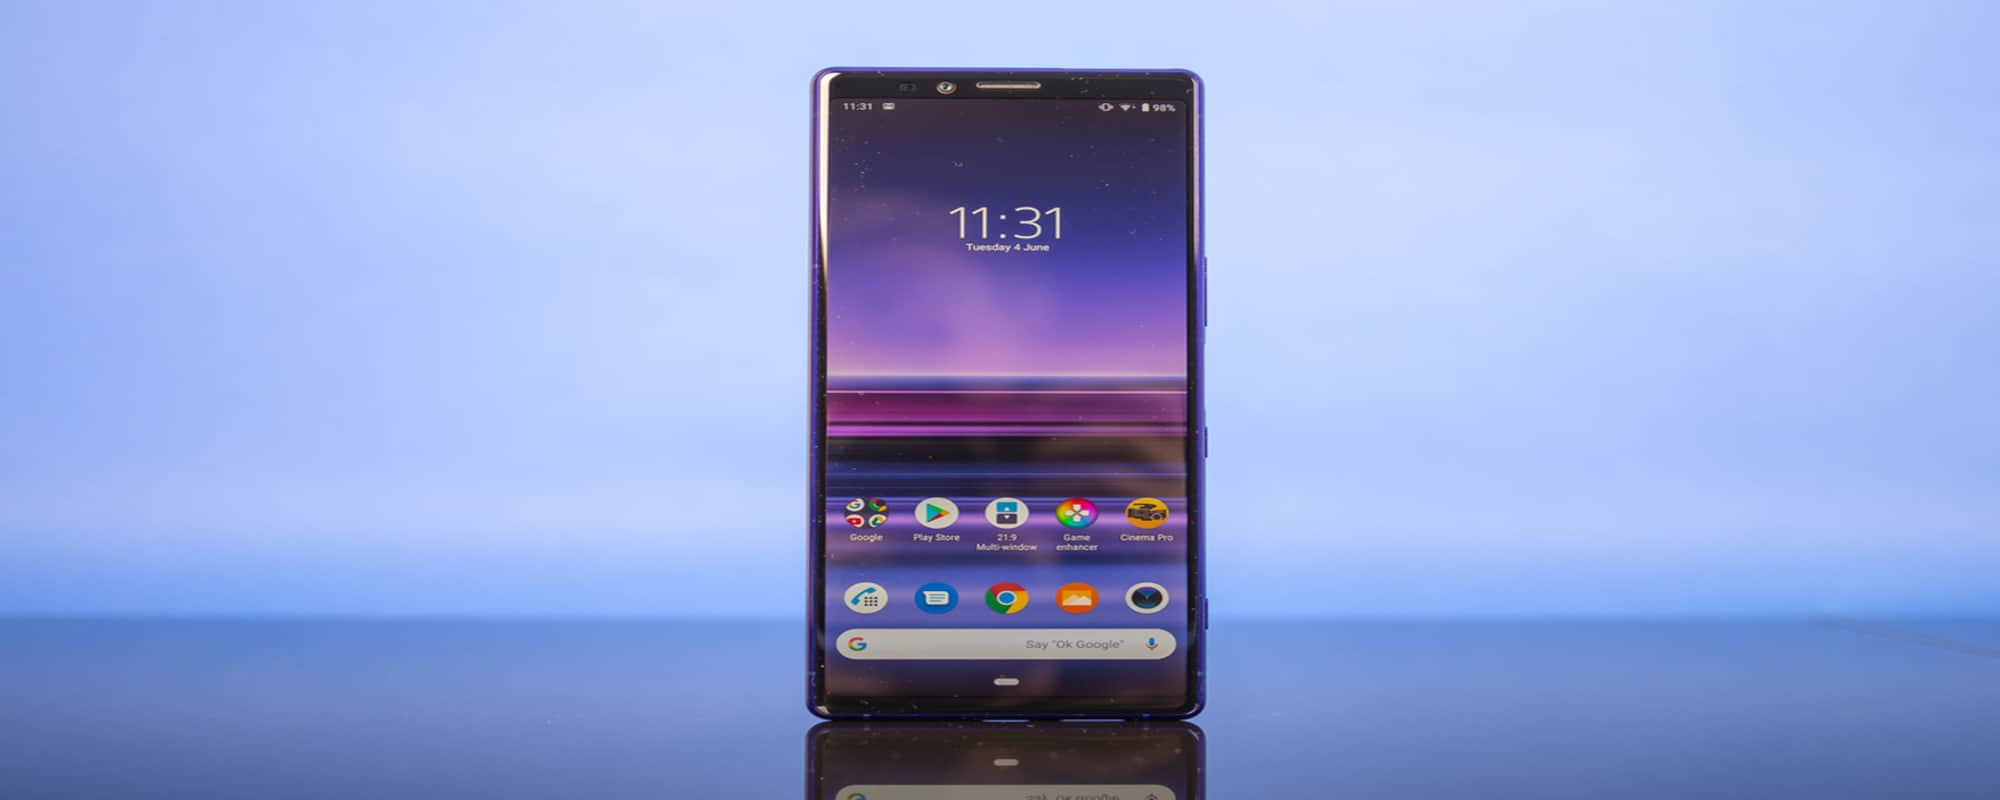 sony-xperia-1-phone-review